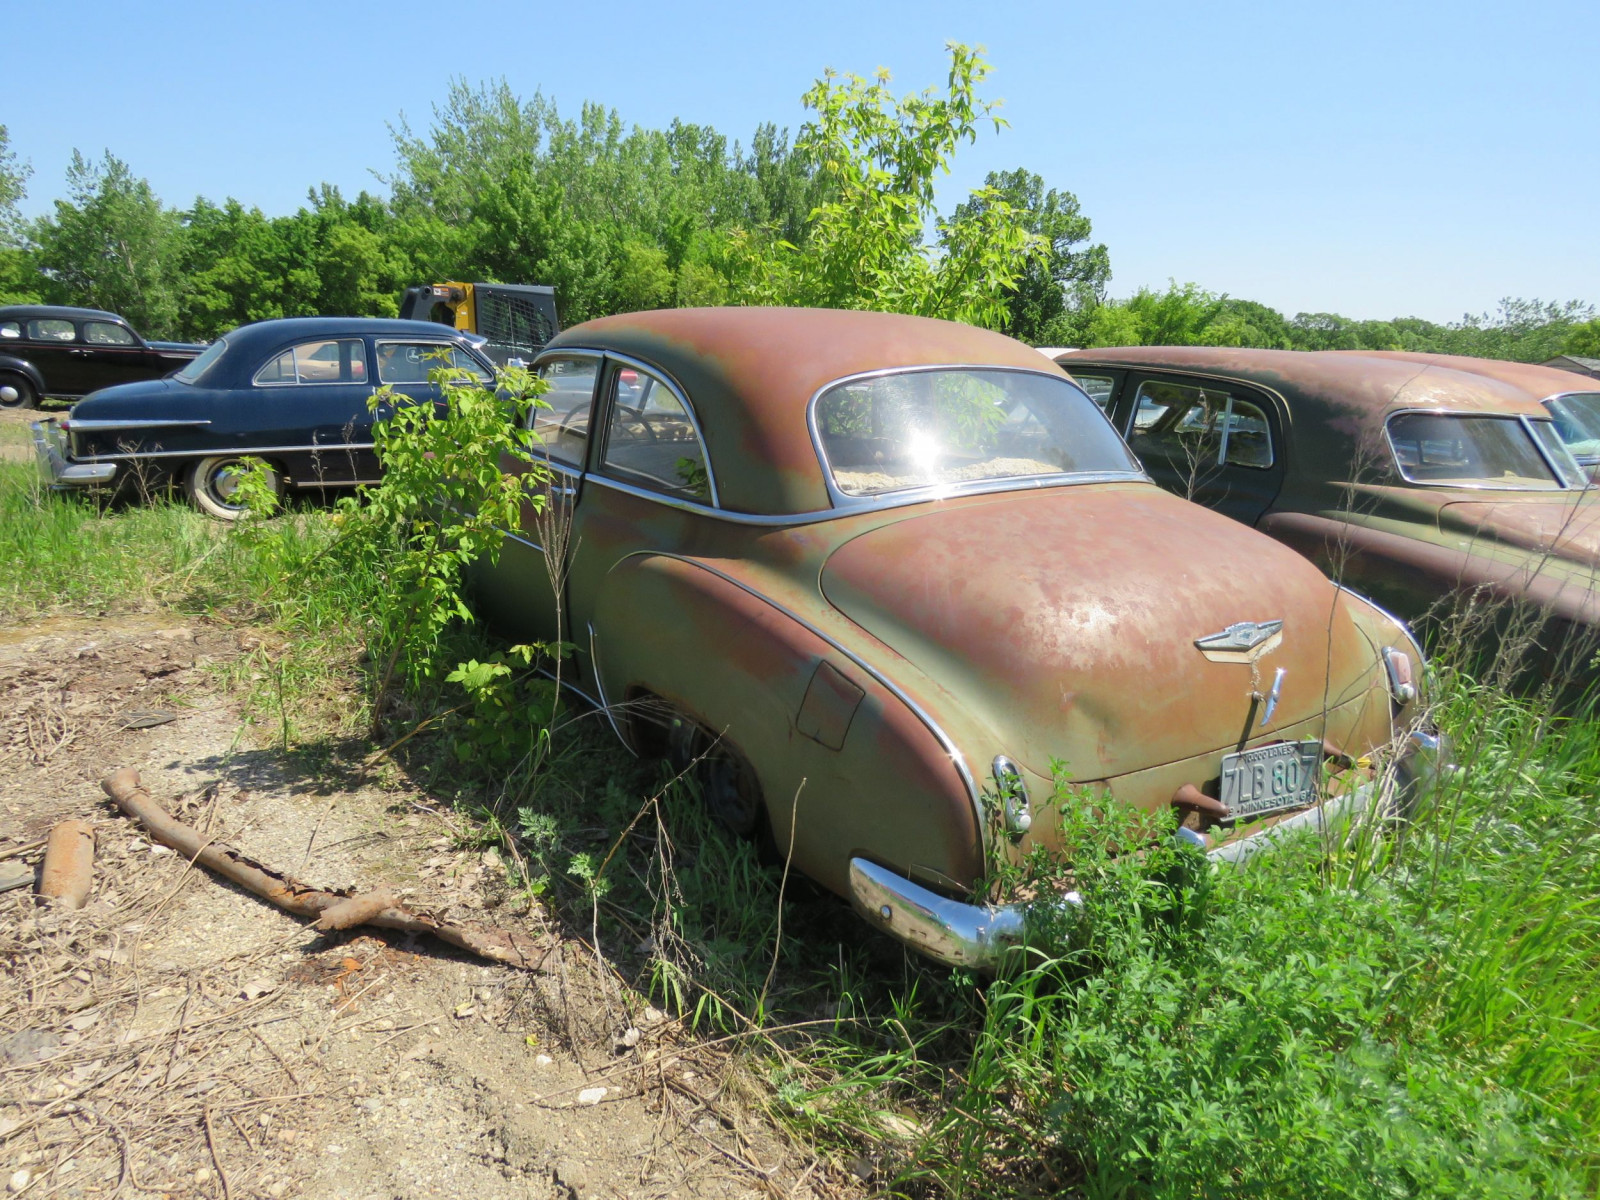 1950 Chevrolet Deluxe 2dr Sedan for project or parts 21GK-121077 - Image 3